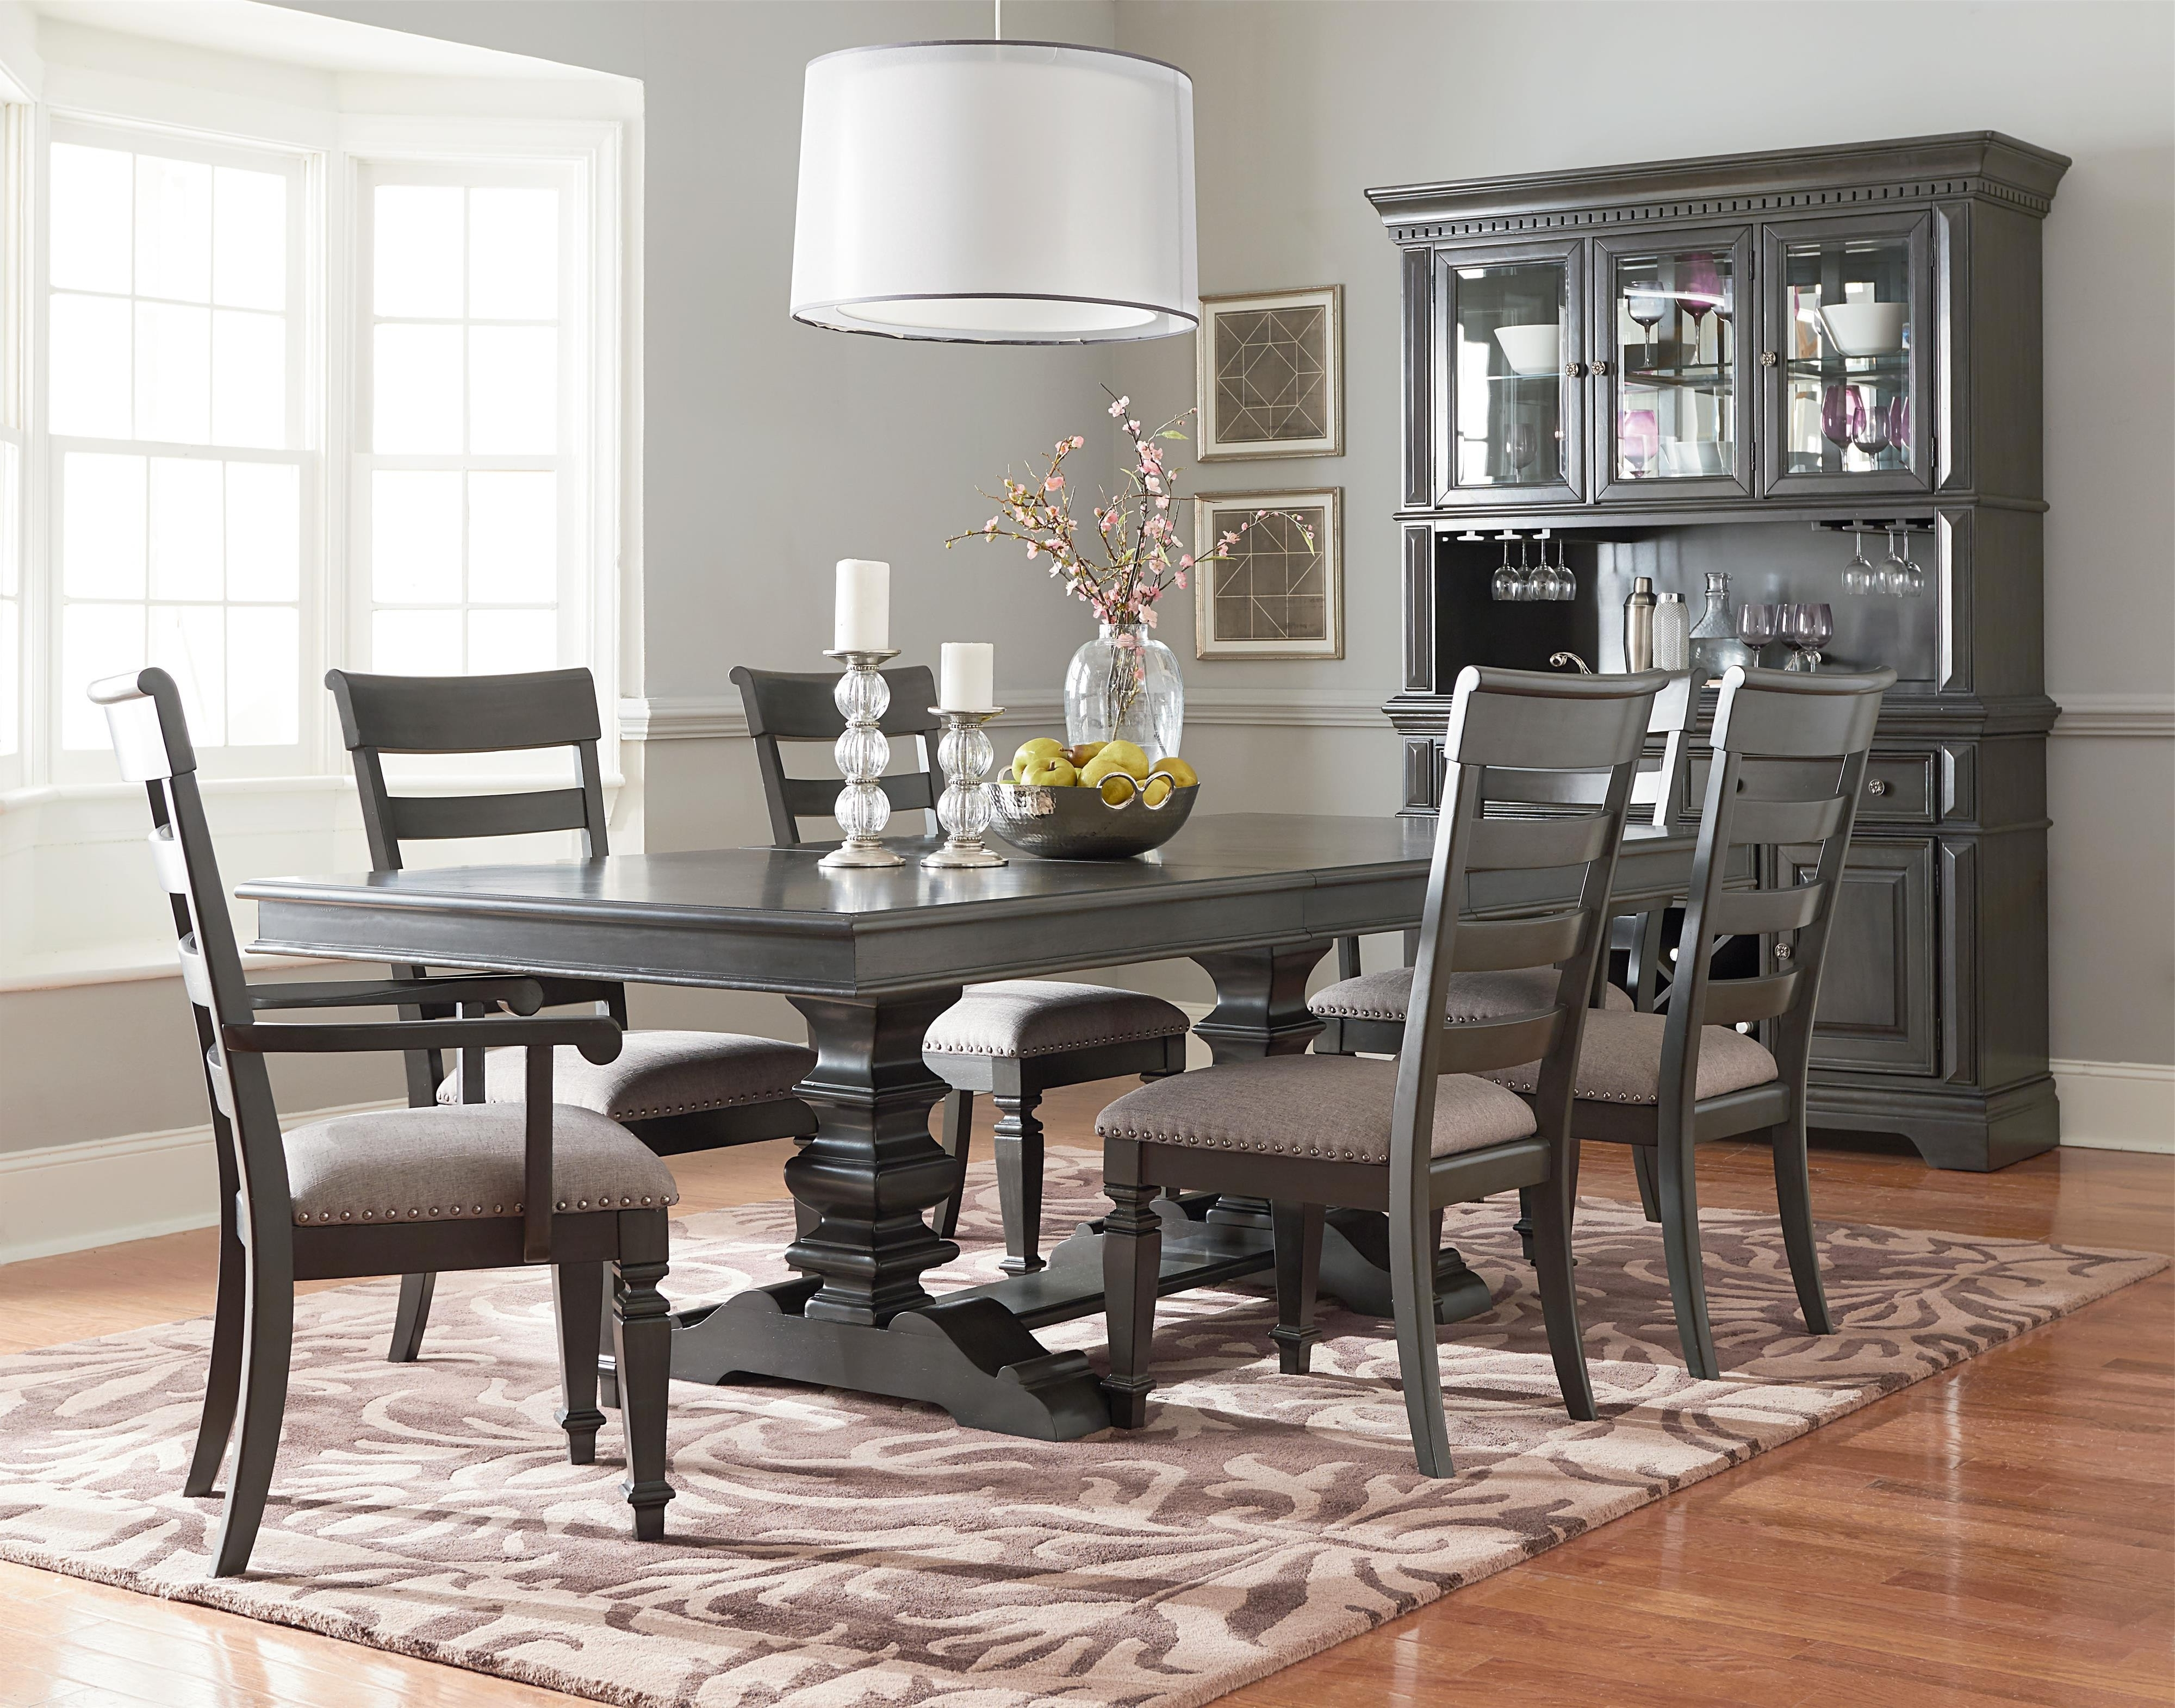 2018 Round Half Moon Dining Tables inside Mesmerizing Half Moon Kitchen Table On Grey Dining Room Table New